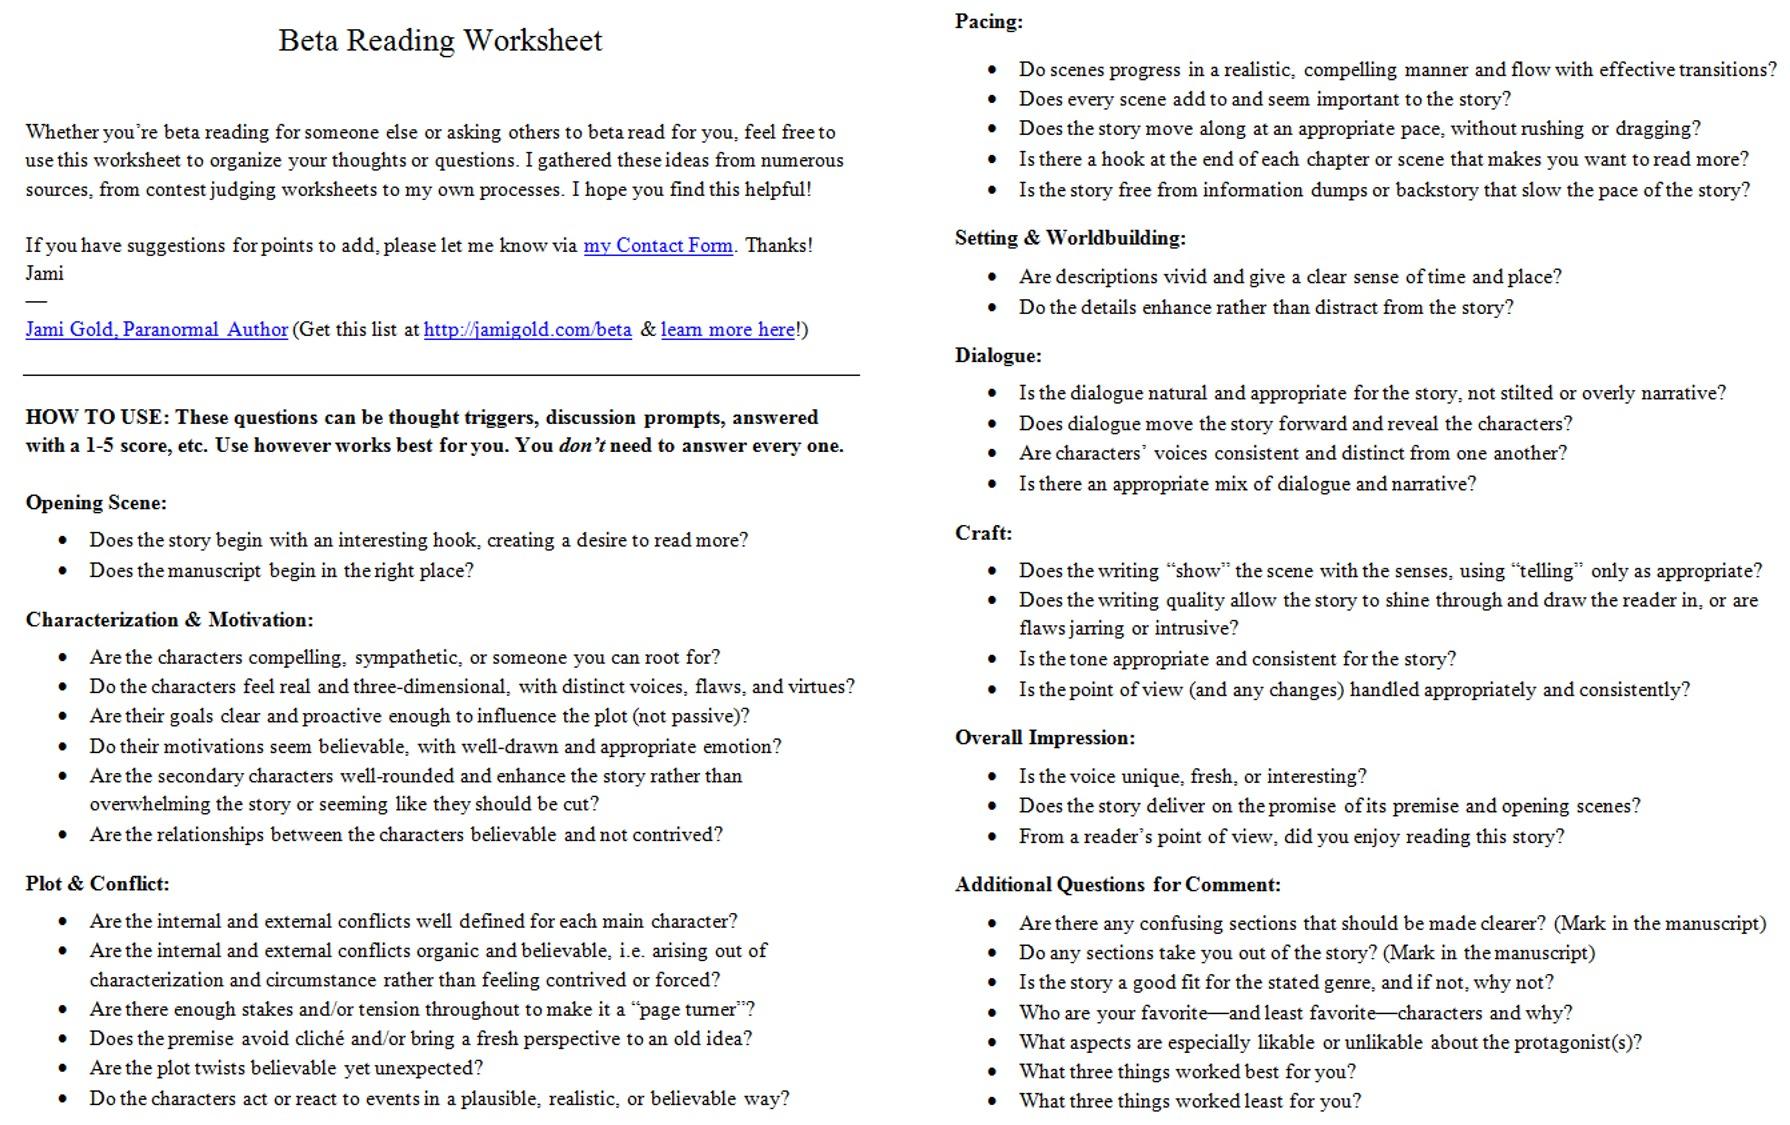 Proatmealus  Marvellous Worksheets For Writers  Jami Gold Paranormal Author With Glamorous Screen Shot Of The Twopage Beta Reading Worksheet With Lovely Dividing By  Worksheets Also Worksheets On Active And Passive Voice In Addition Solid Liquid Gases Worksheets And Free Printable Comma Worksheets As Well As Dividing Powers Worksheet Additionally Number Tracing Worksheets For Kindergarten From Jamigoldcom With Proatmealus  Glamorous Worksheets For Writers  Jami Gold Paranormal Author With Lovely Screen Shot Of The Twopage Beta Reading Worksheet And Marvellous Dividing By  Worksheets Also Worksheets On Active And Passive Voice In Addition Solid Liquid Gases Worksheets From Jamigoldcom